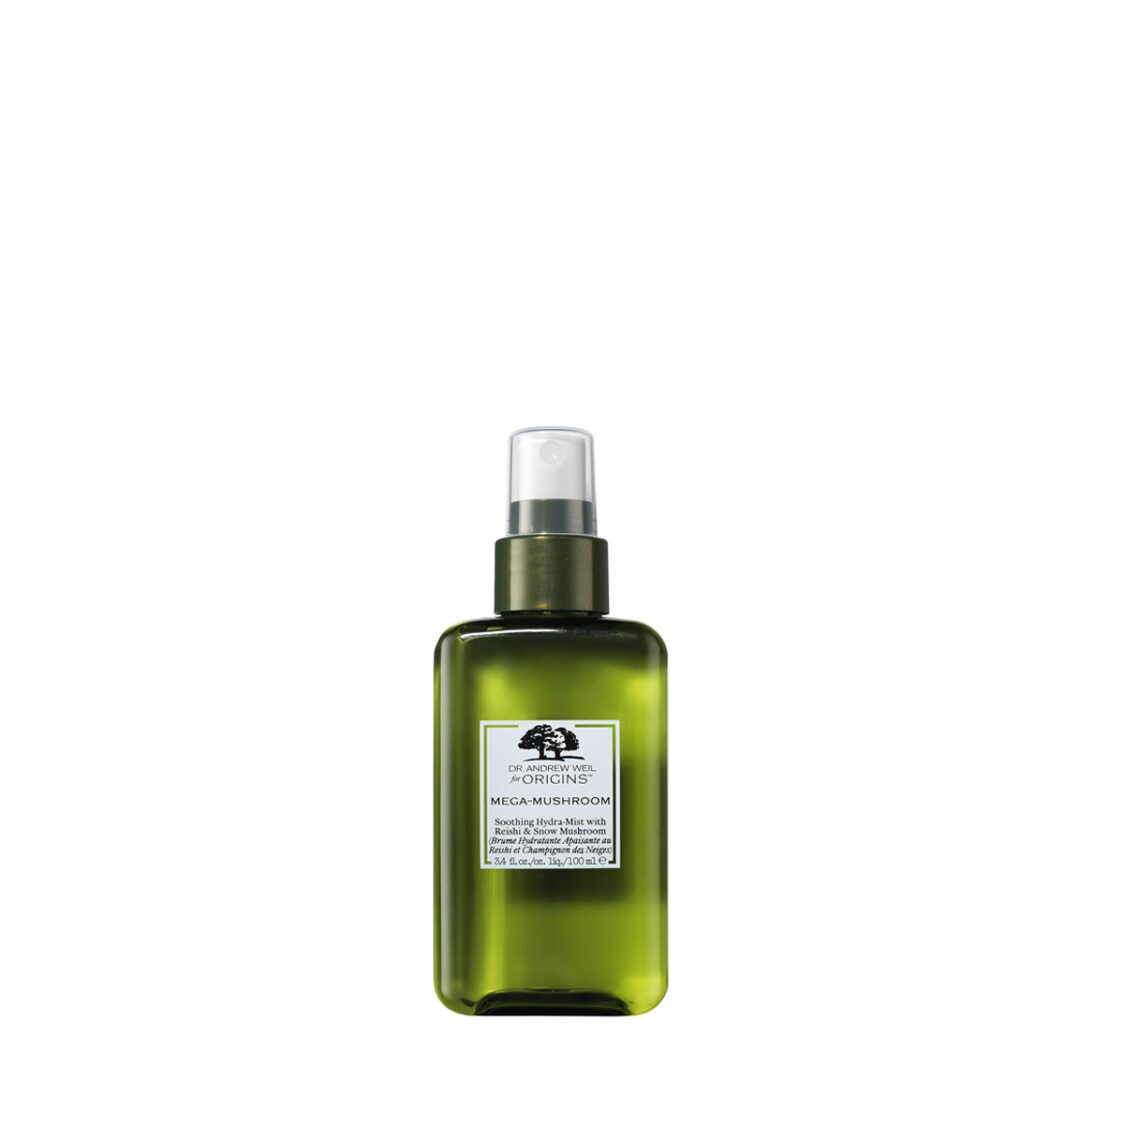 Dr Andrew Weil For Origins Mega-Mushroom Soothing Hydra-Mist with Reishi and Snow Mushroom 100ml